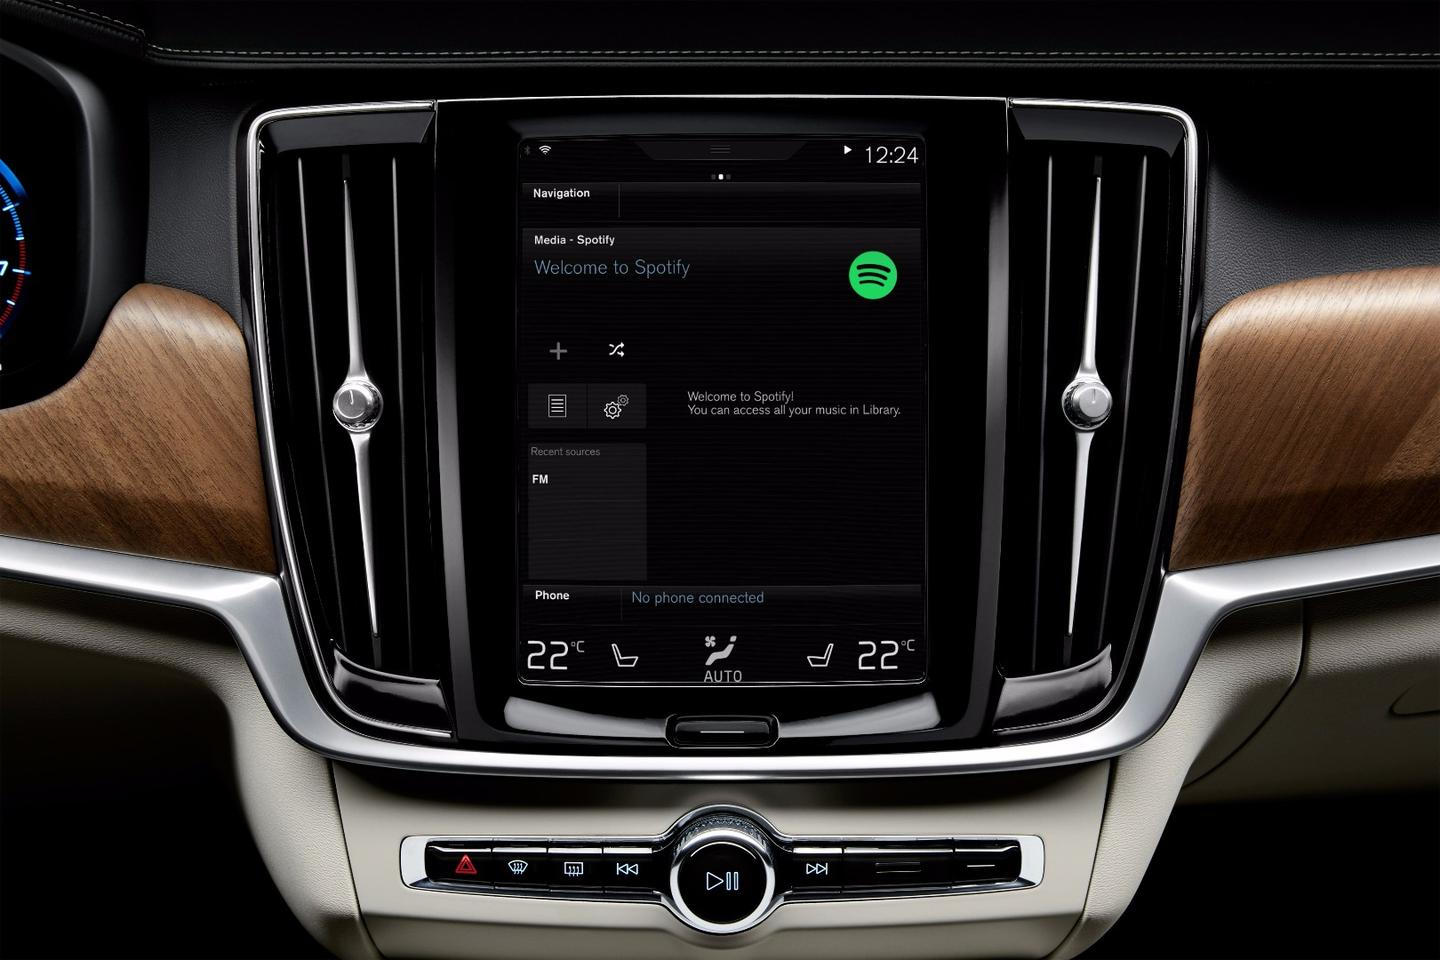 Volvo drivers will be able to access their Spotify playlists, artists and albums via the Sensus in-car interface